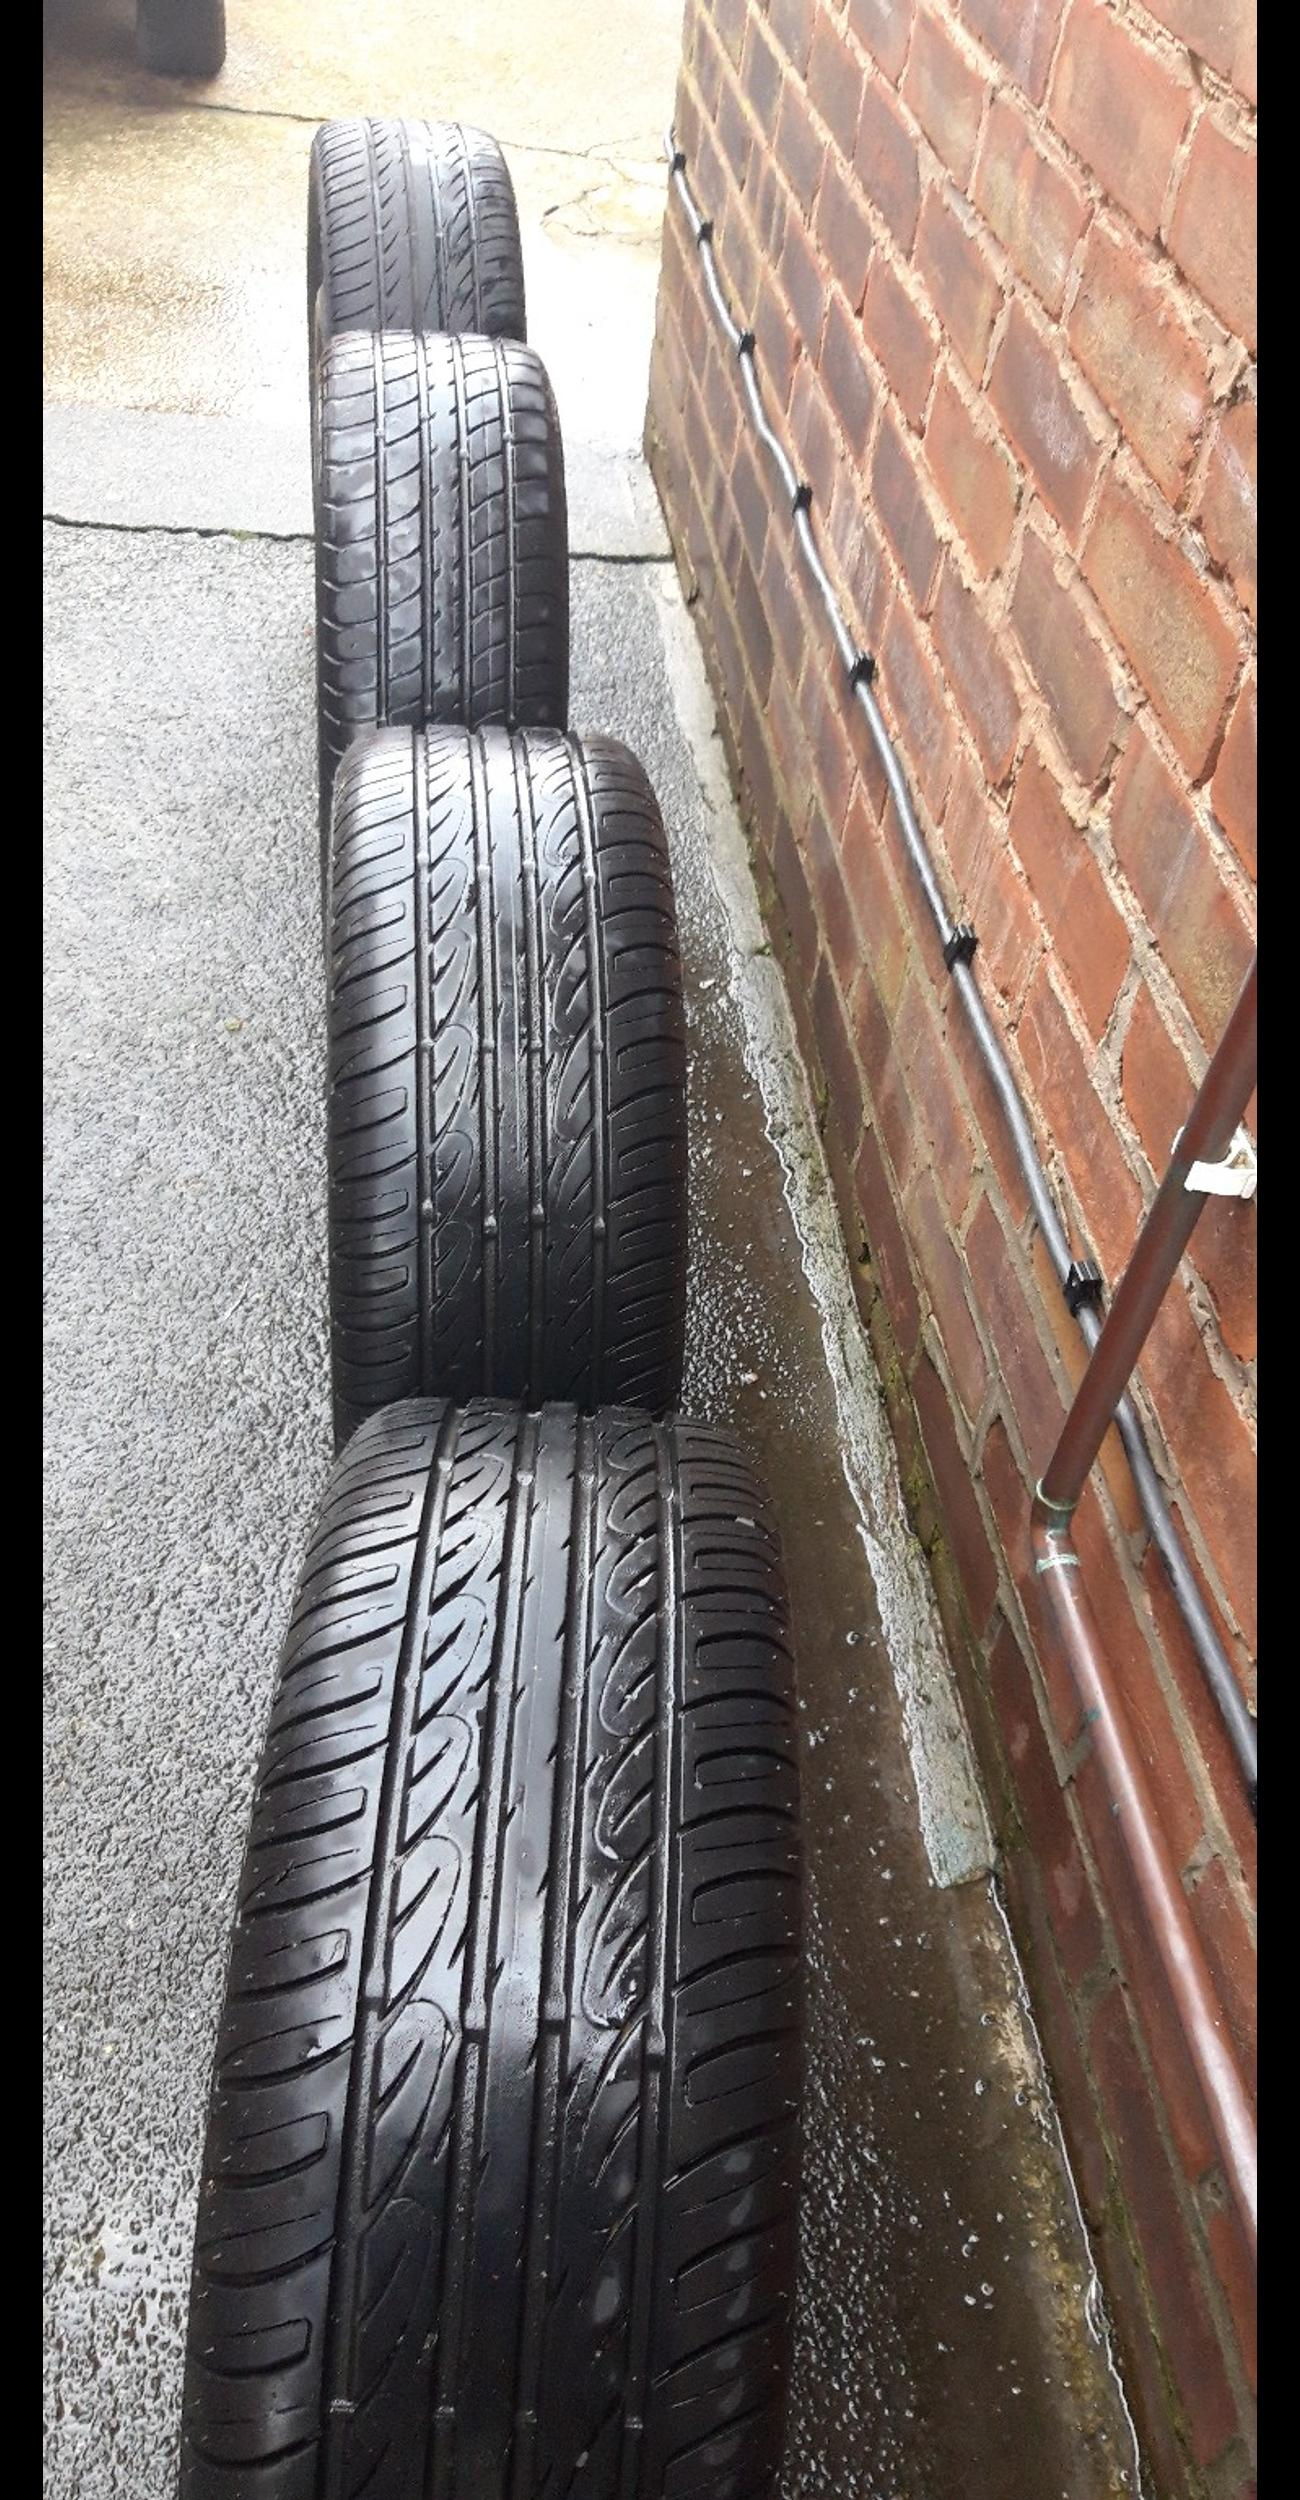 used car steel wheels and tyres. in FY2